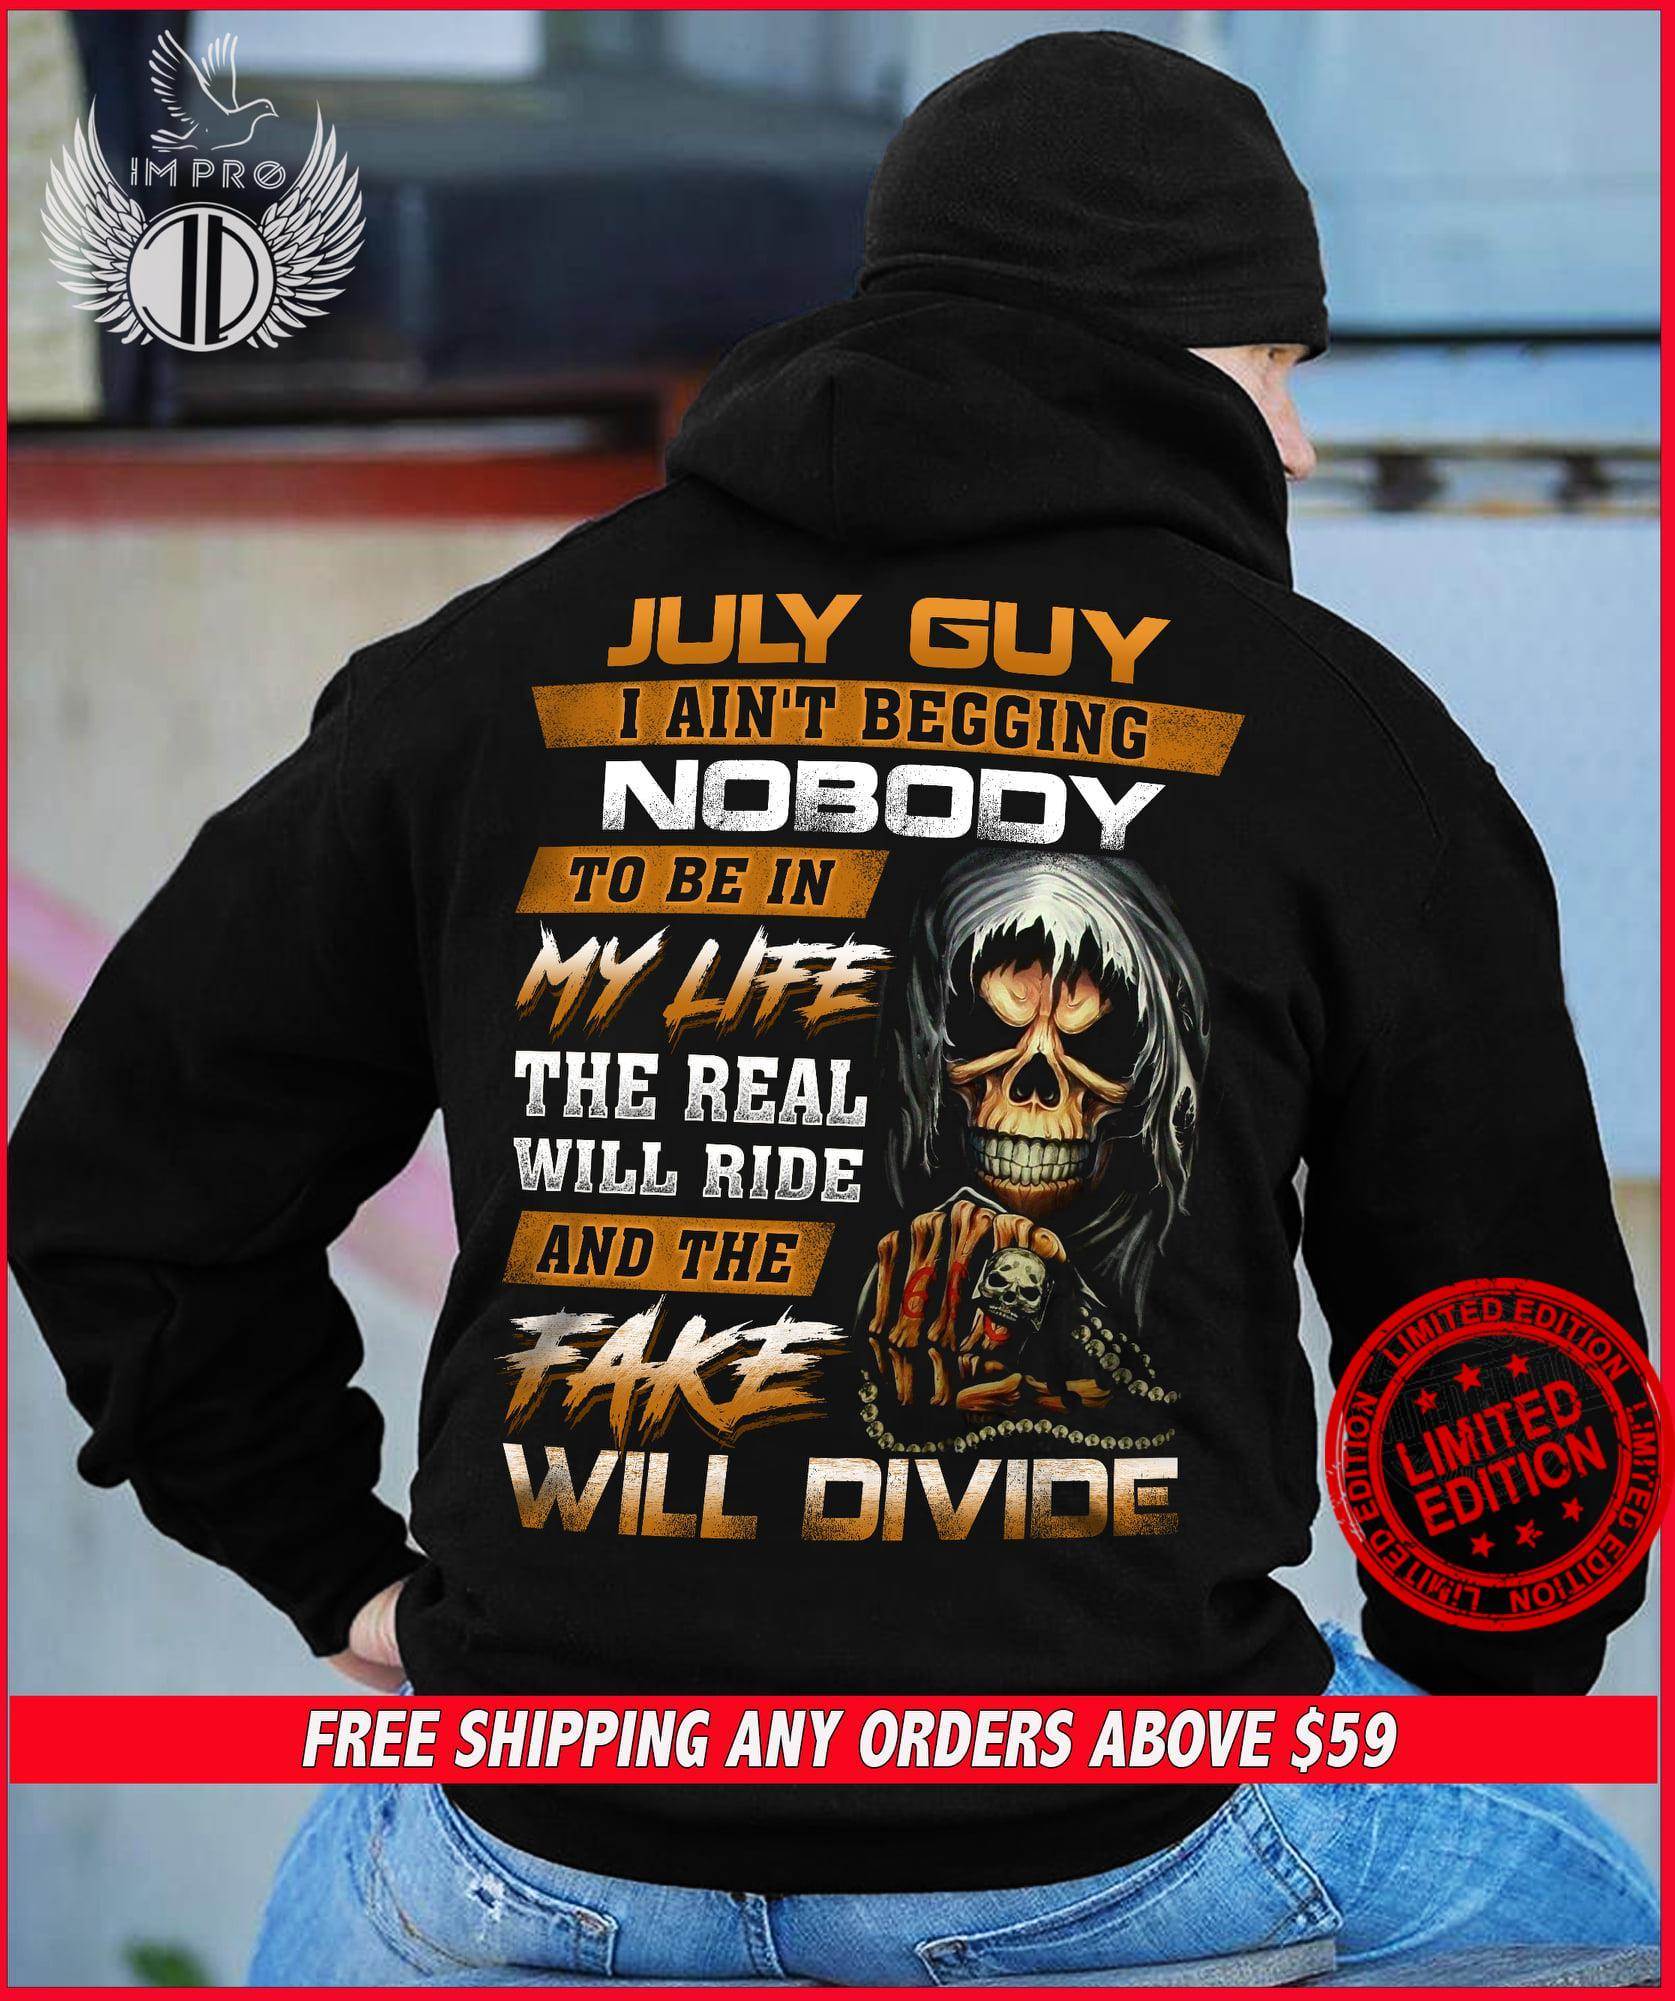 July Guy I Ain't Beggin Nobody To Be In My Life The Real Will Ride And The Fake Will Divide Shirt